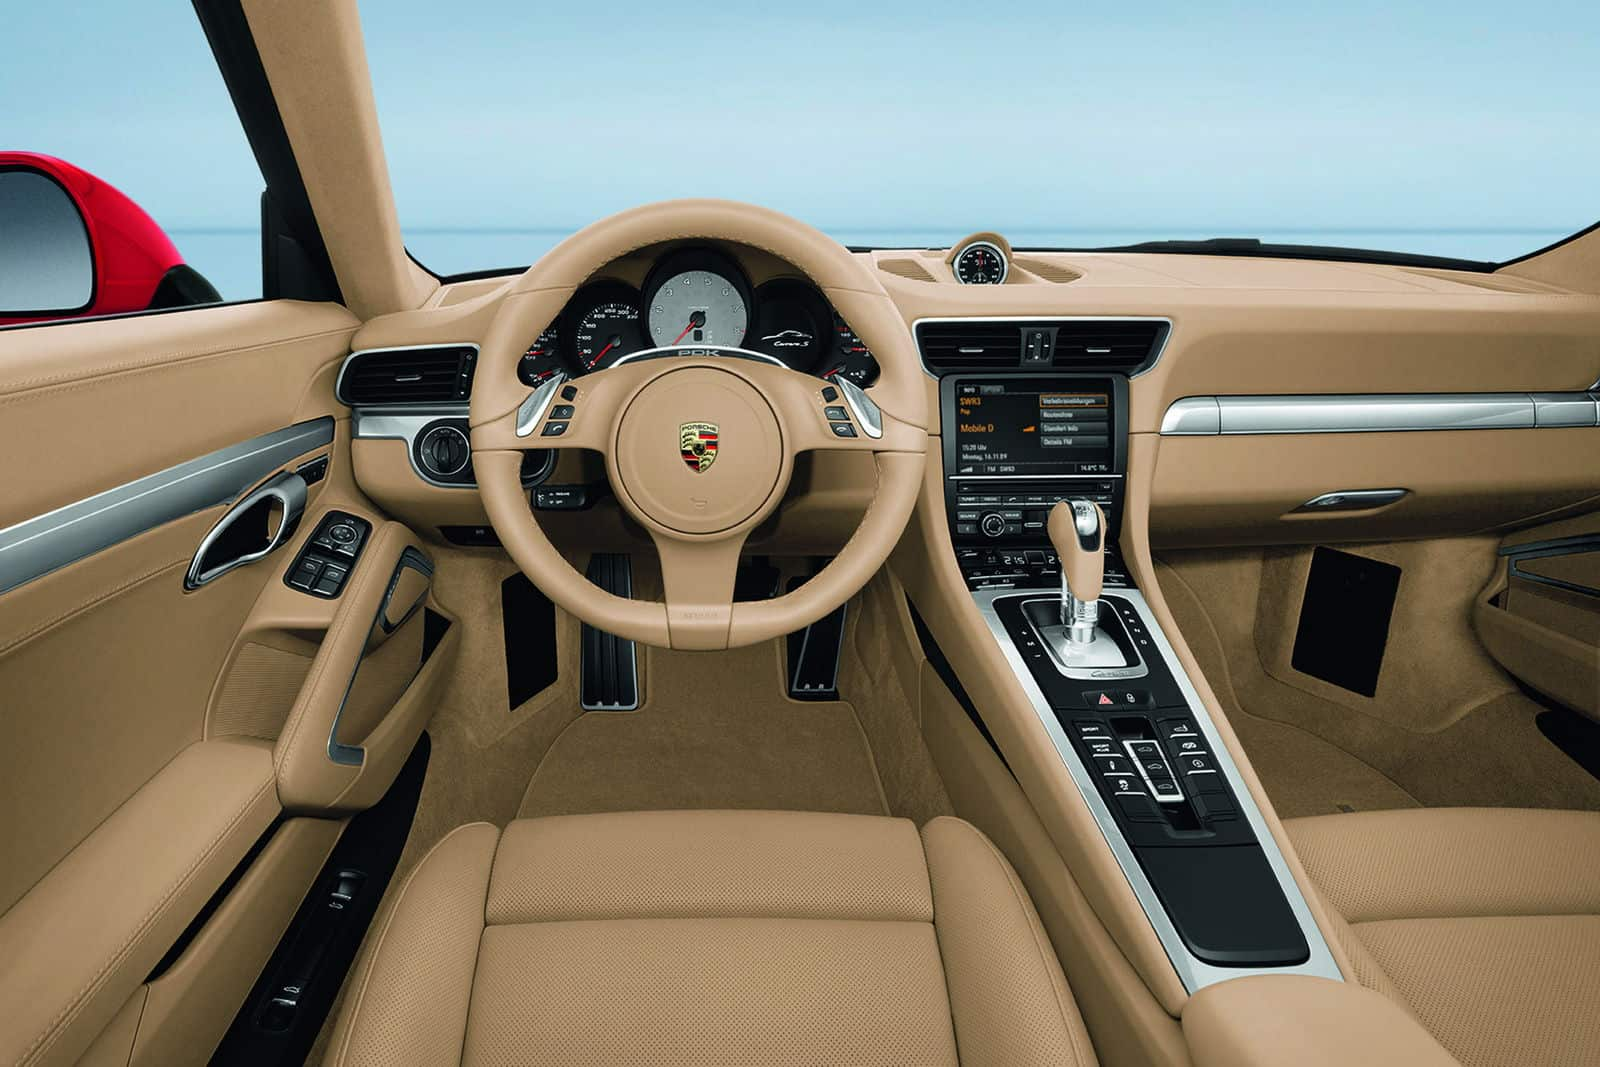 2012-Porsche-911-Carrera-991-Interior